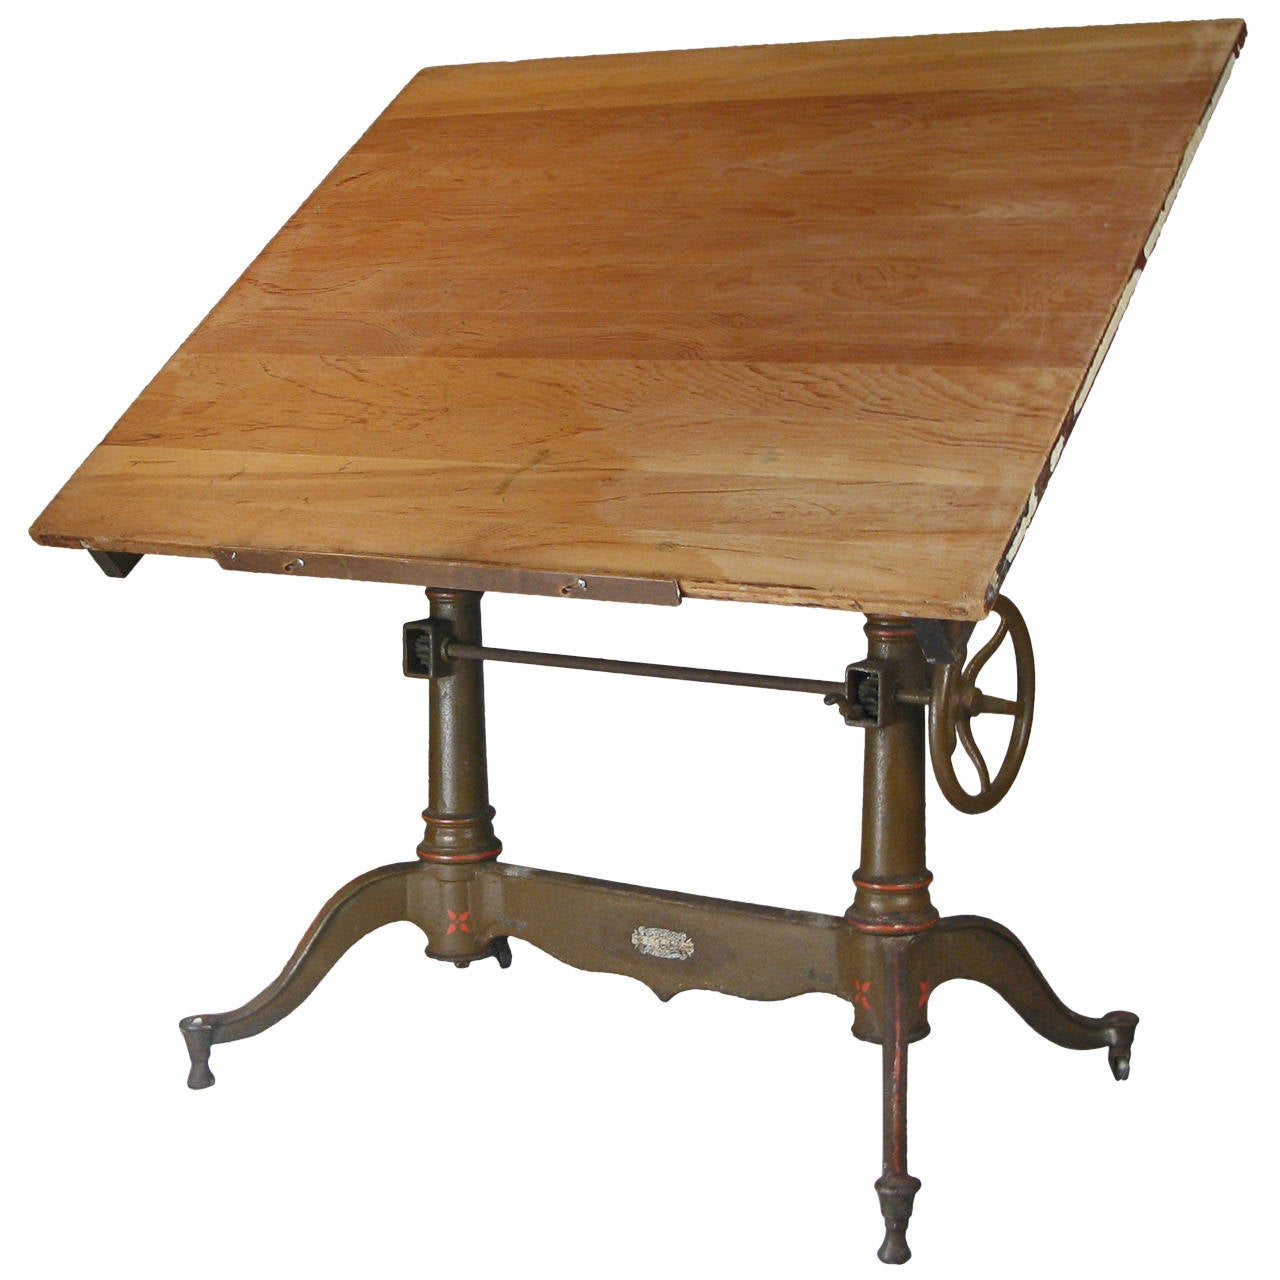 Antique Industrial Cast Iron Adjustable Drafting Table at  : 2662032l from www.1stdibs.com size 1280 x 1280 jpeg 113kB